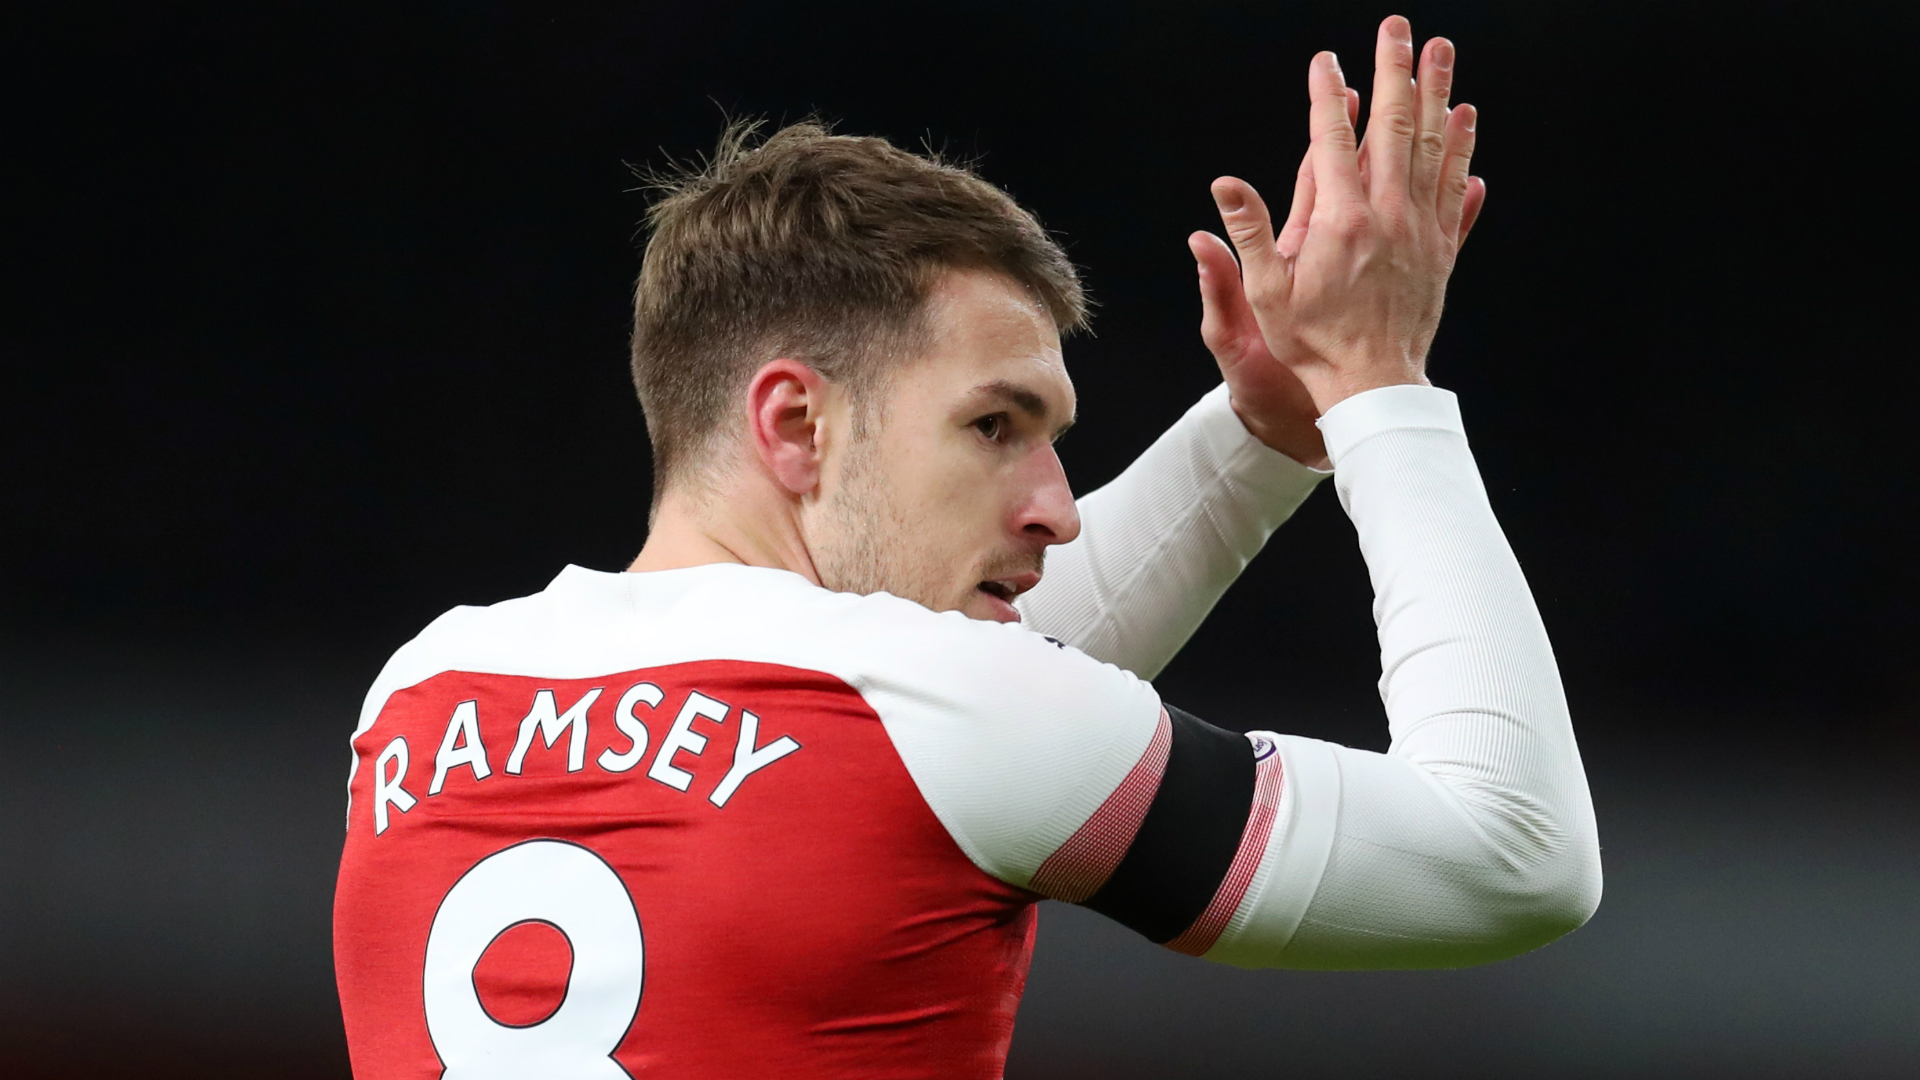 Arsenal did not offer Ramsey new deal due to 'salary balance' concerns